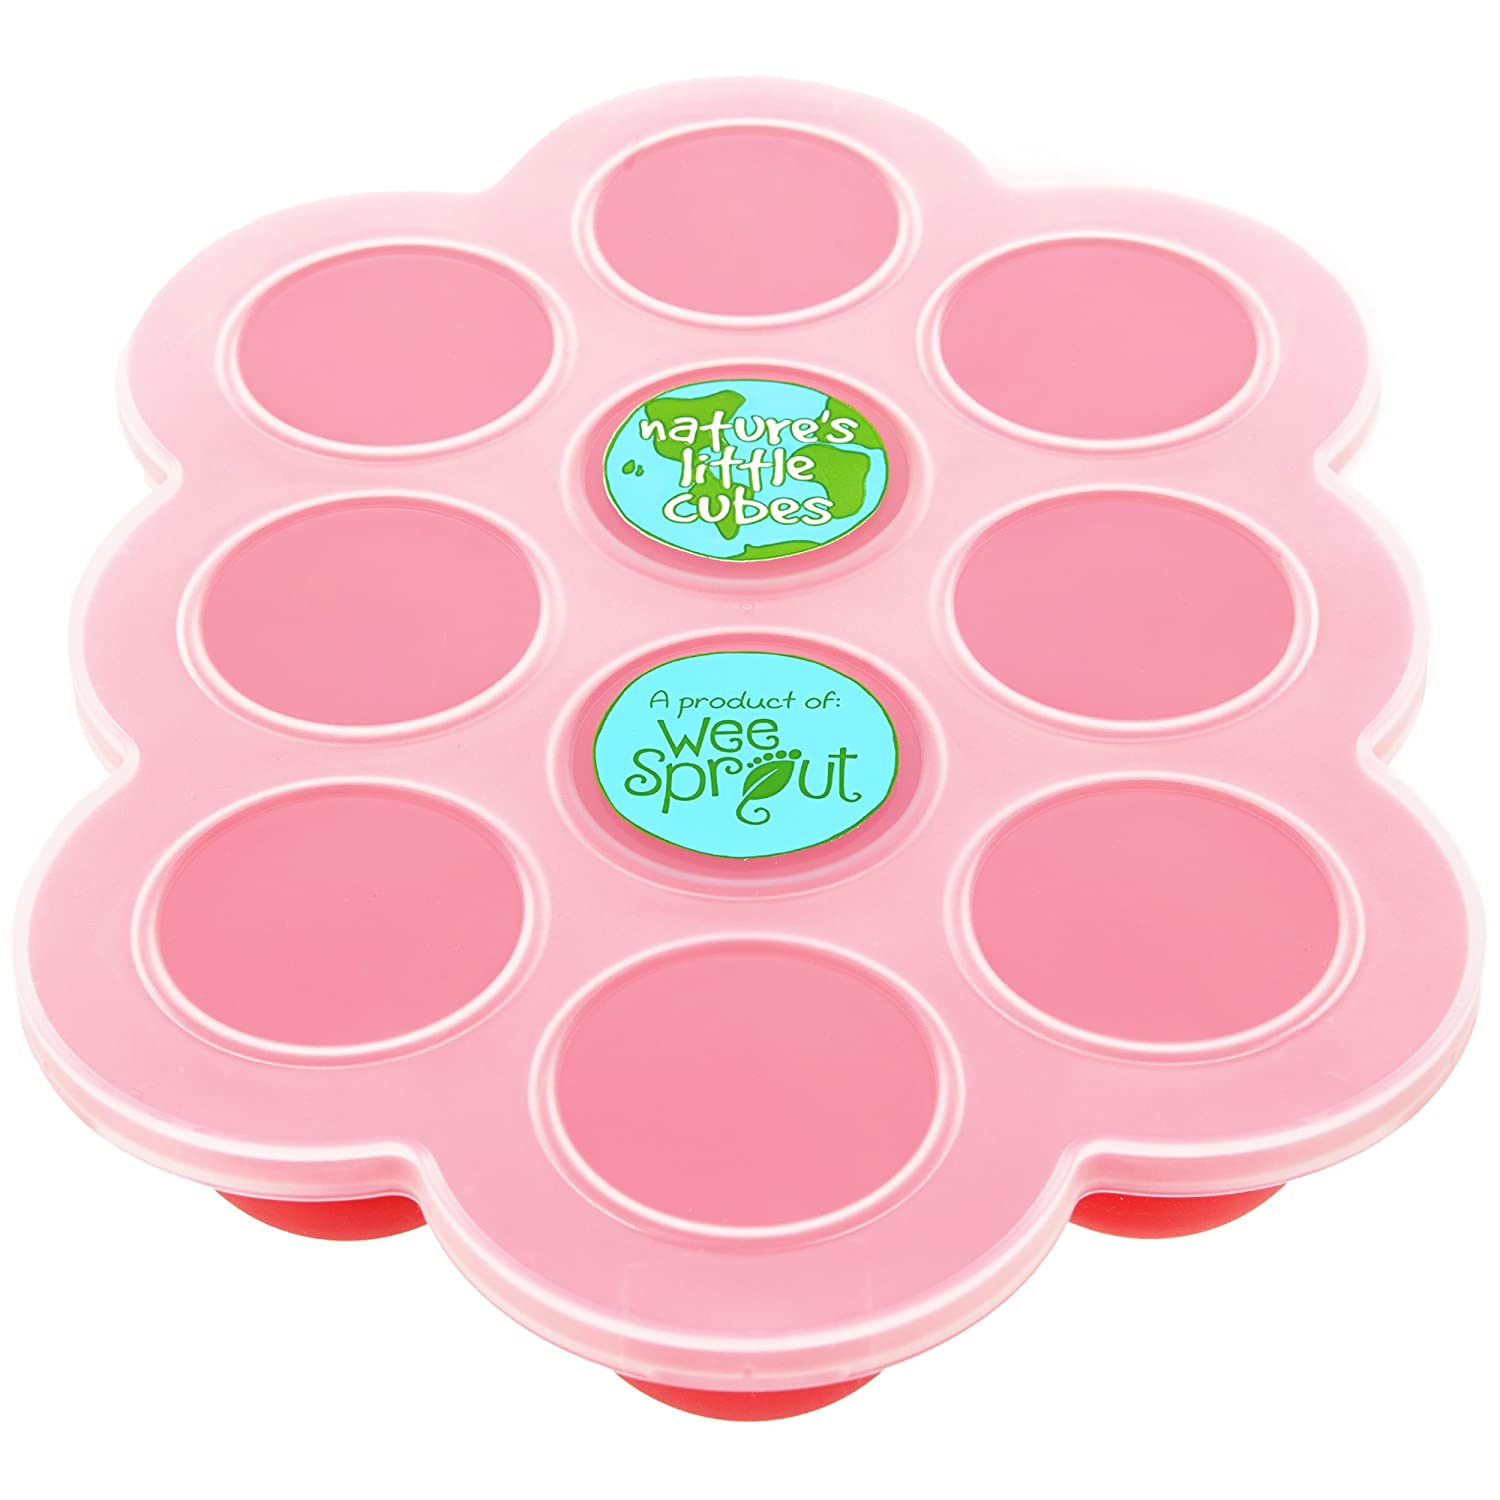 Silicone Baby Food Freezer Tray with Clip-on Lid by WeeSprout - Perfect Storage Container for Homemade Baby Food, Vegetable & Fruit Purees and Breast Milk - BPA Free & FDA Approved NLC-1.5-OR